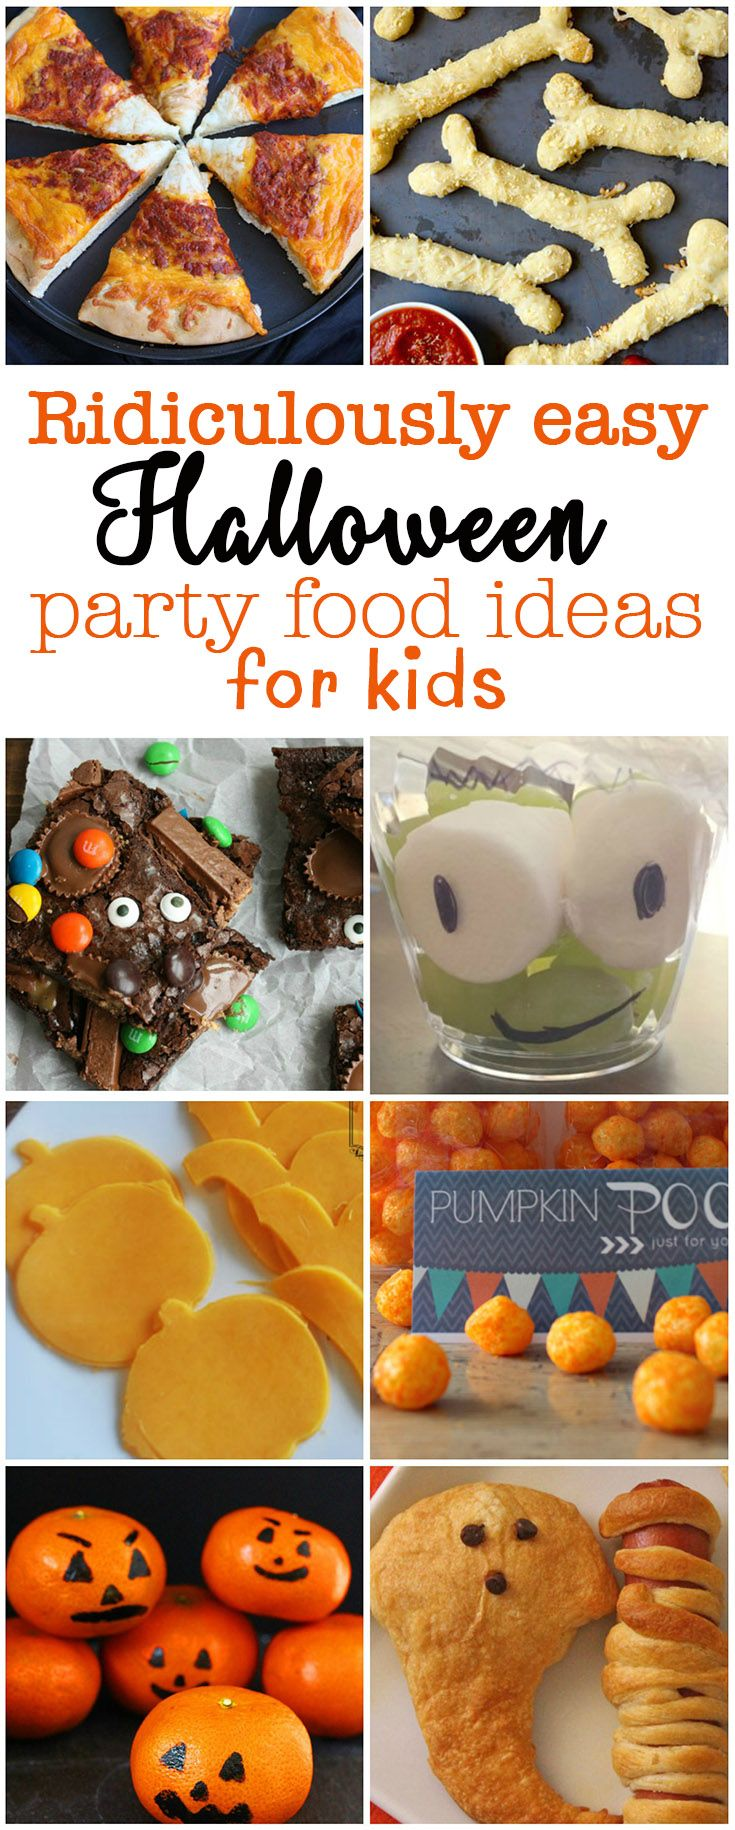 Ridiculously easy Halloween party food ideas for kids